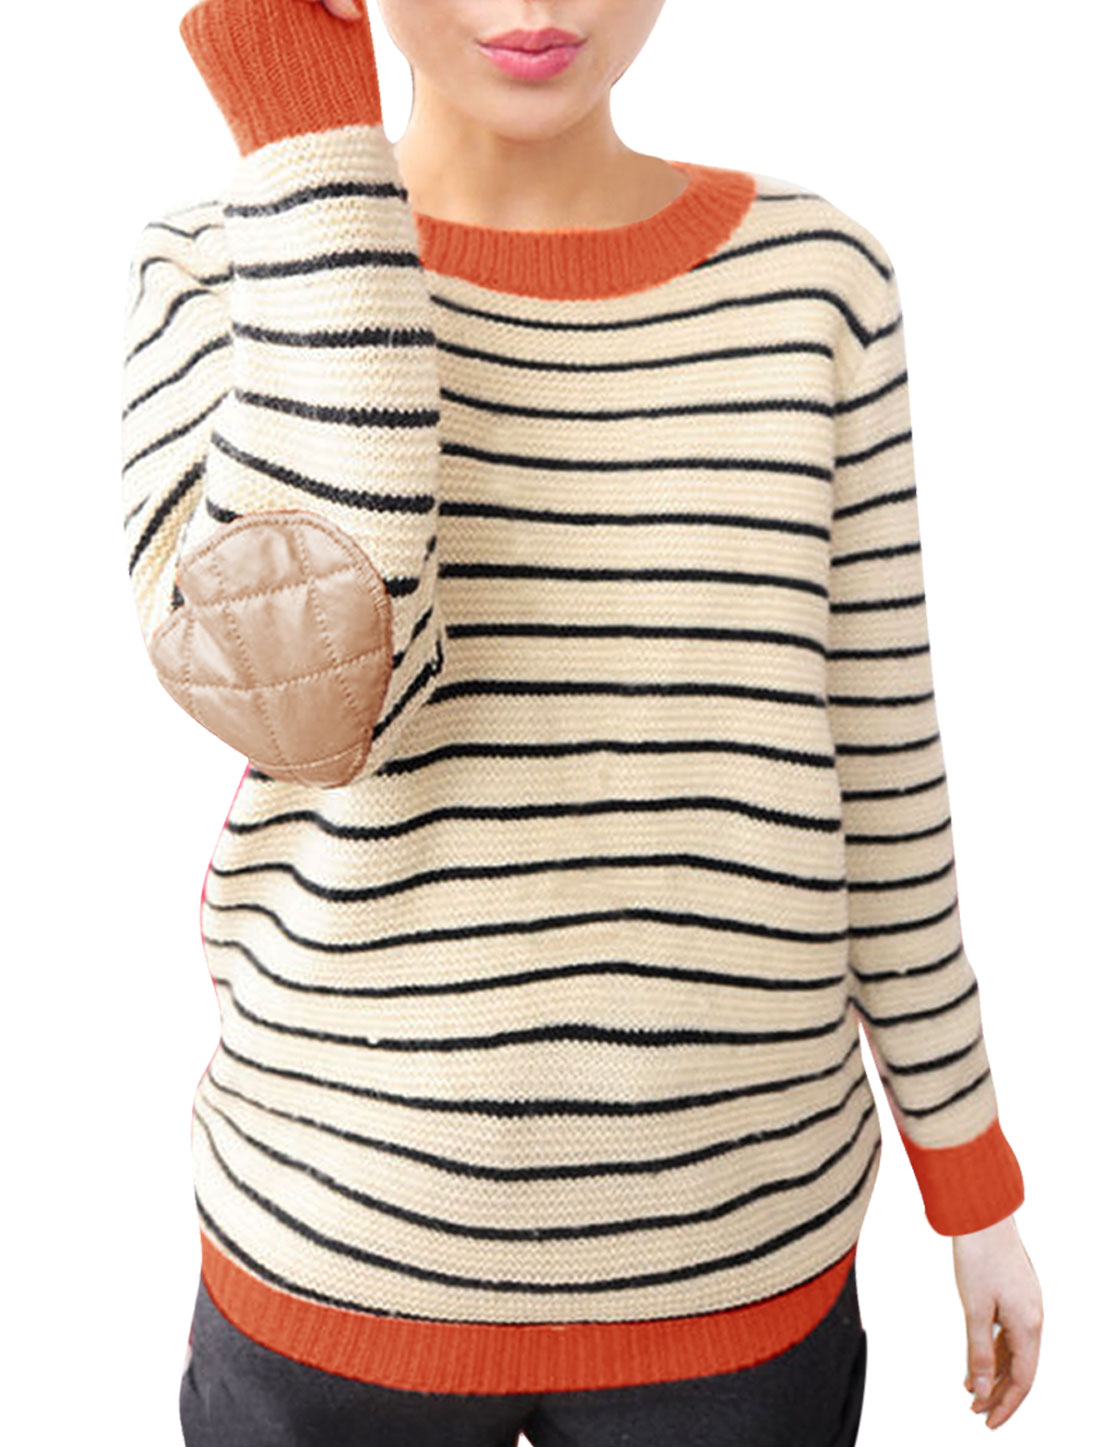 Women Long Sleeves Crew Neck Elbow Patch Striped Sweater Beige M